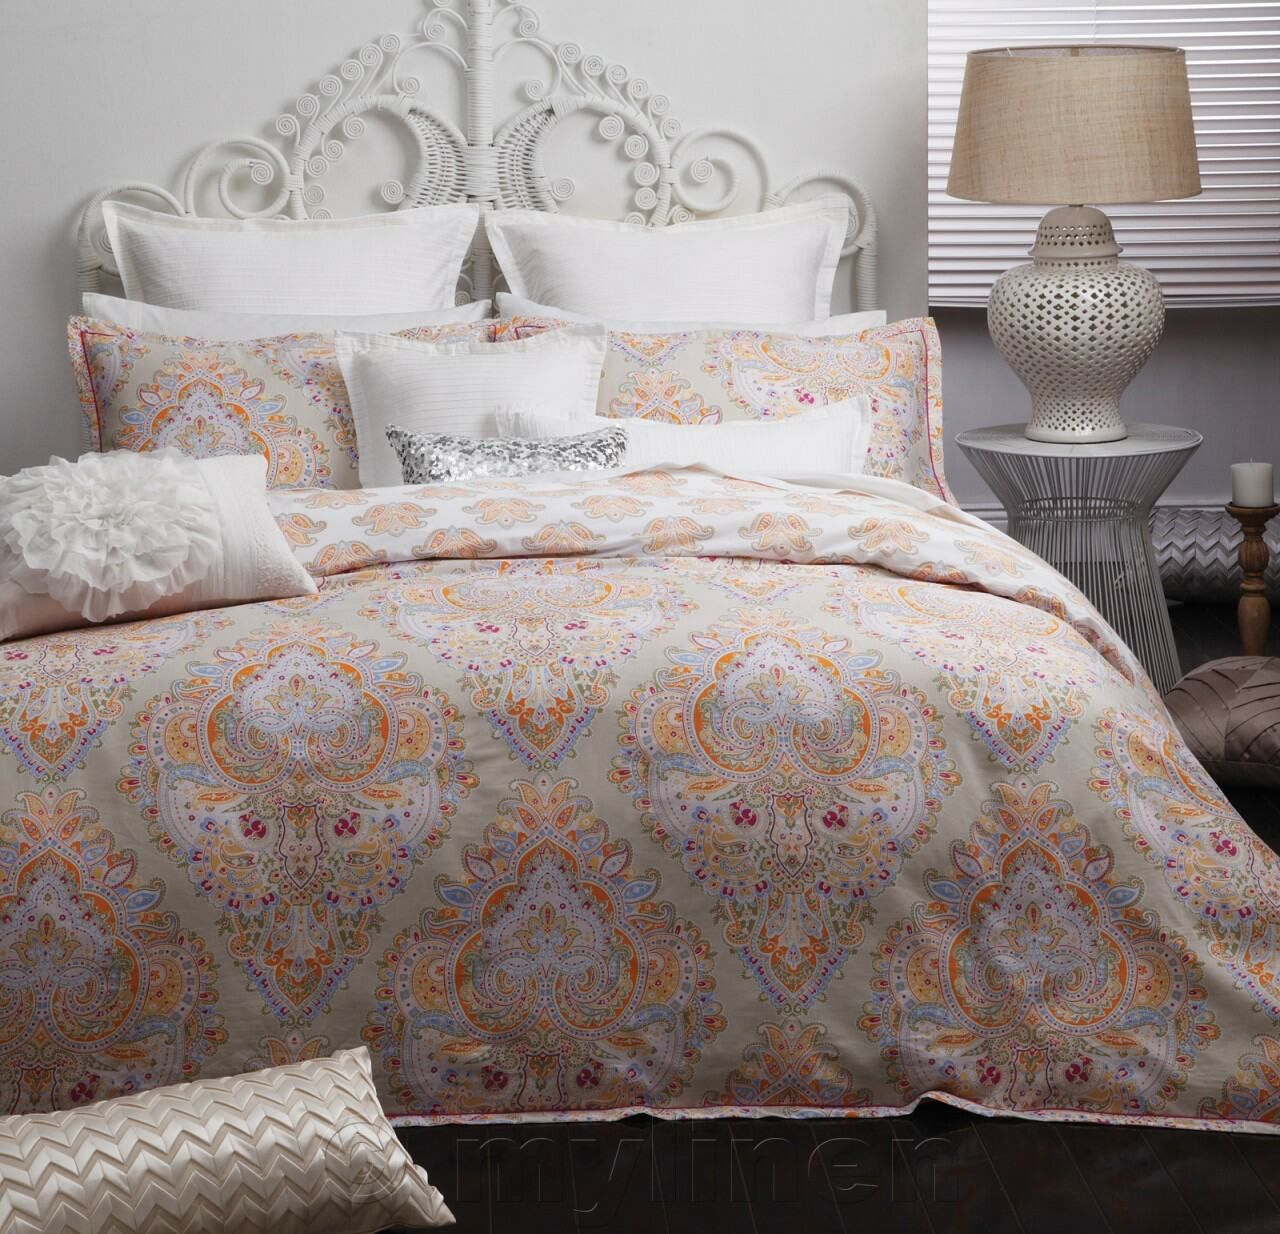 Doona Protector Shreya Sorbet Quilt Doona Cover Set Logan And Mason Bedroom